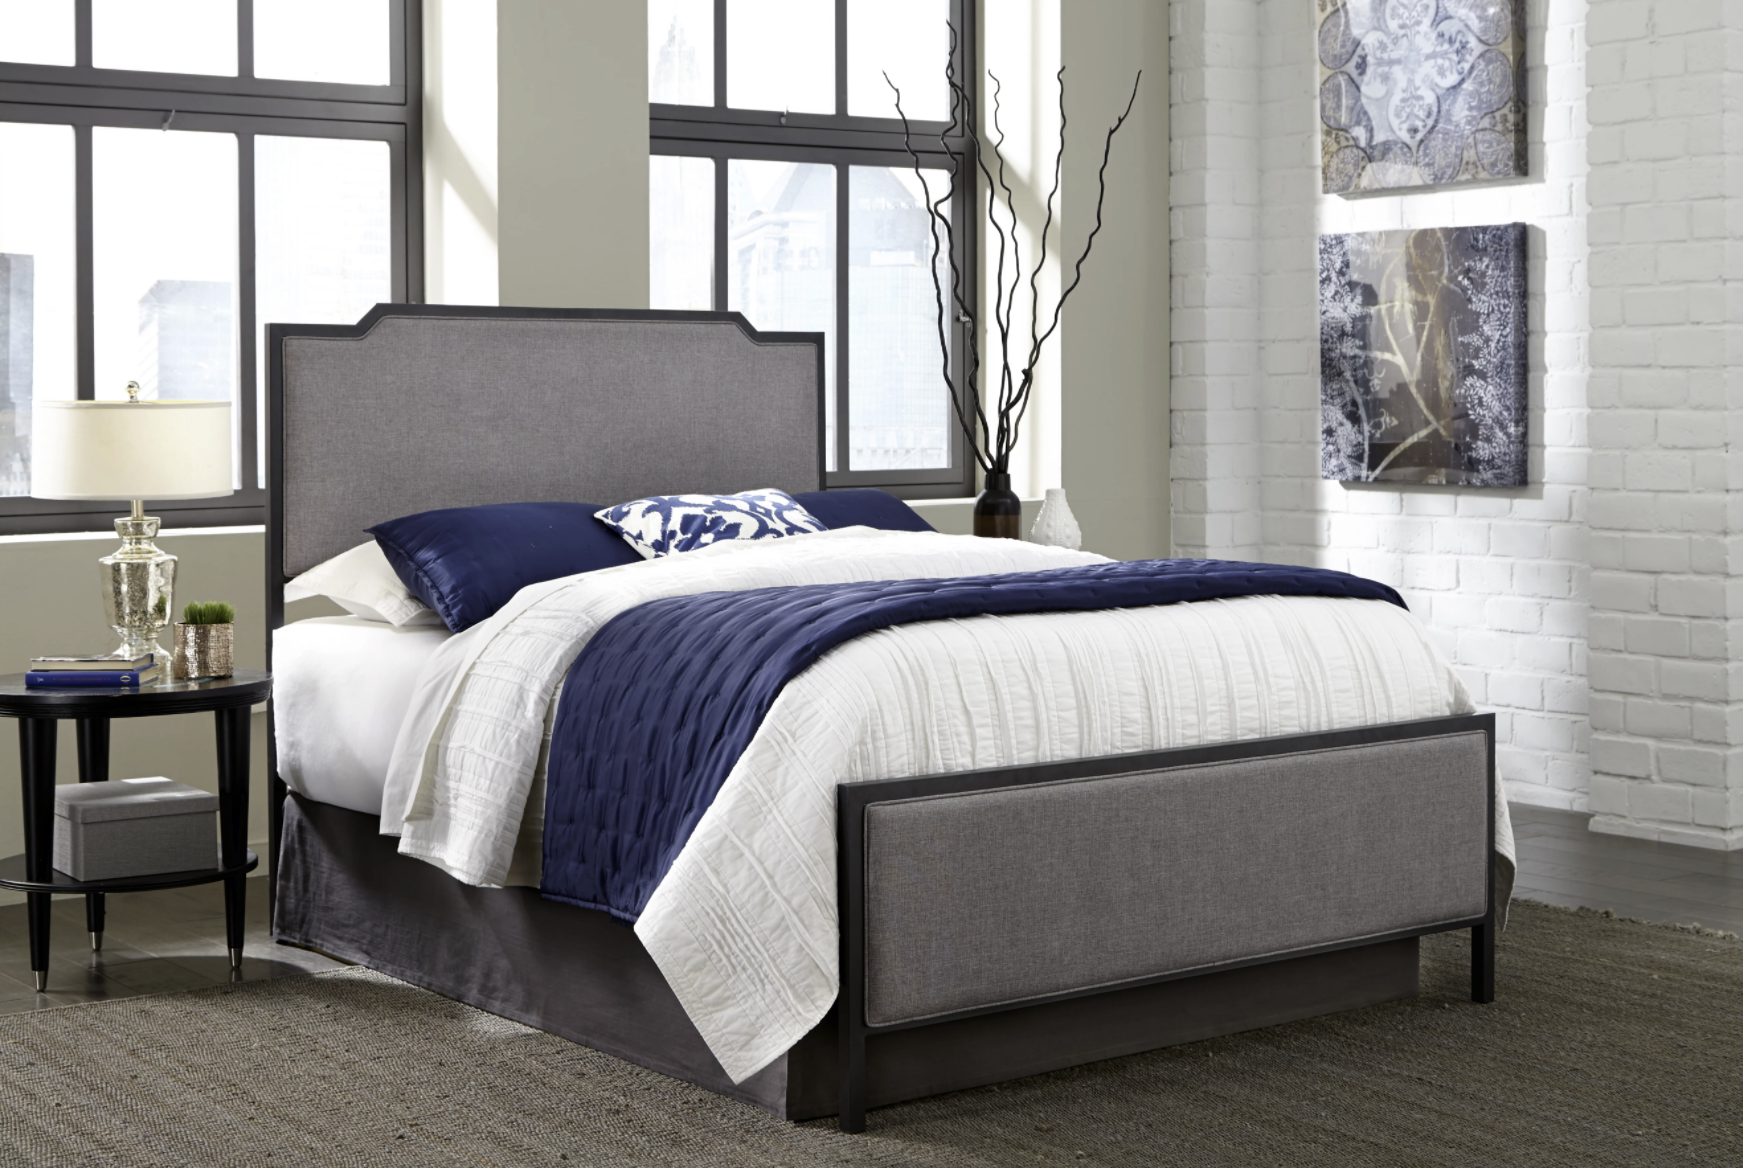 Bayview Bed Bed styling, Headboard, footboard, Bed